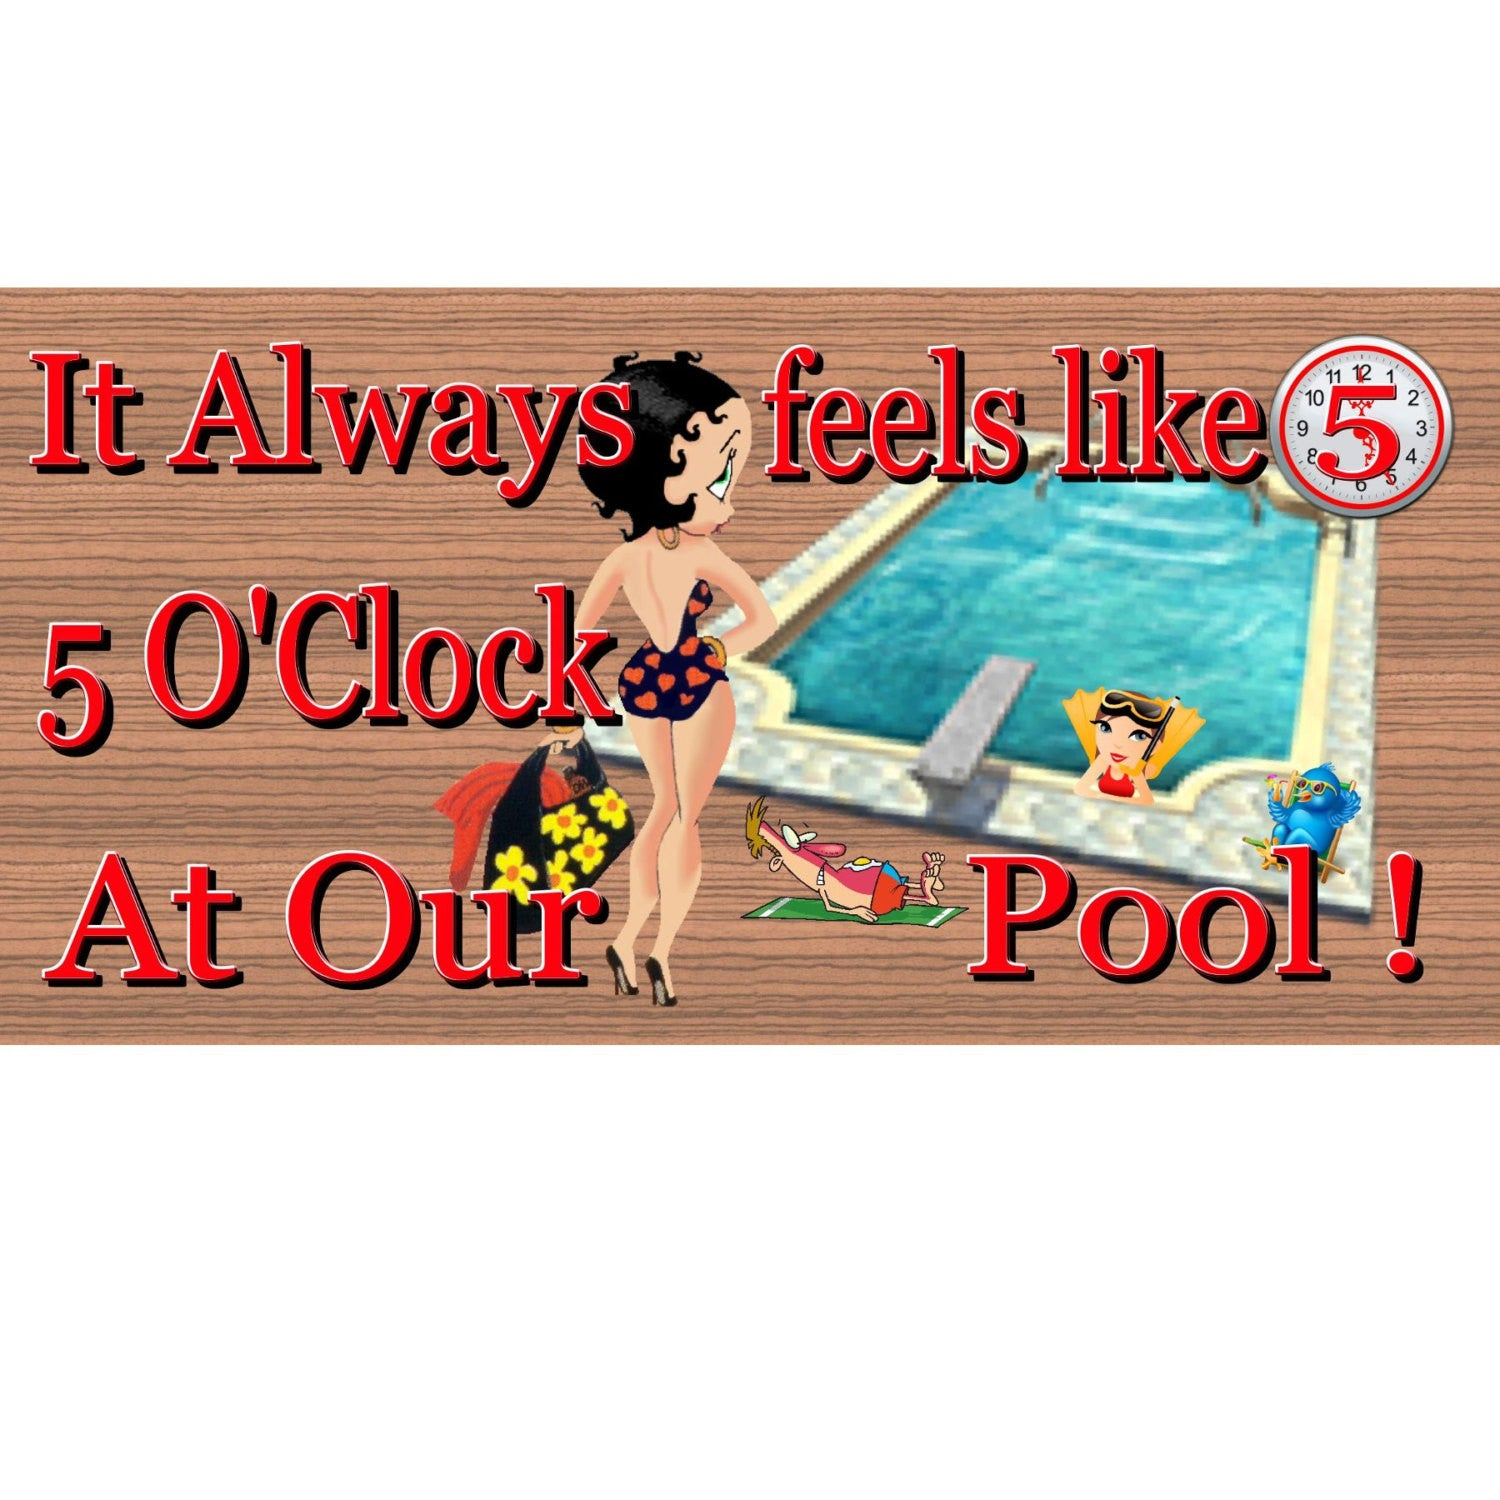 Beach Wood Signs -Its Always 5 O'Clock at the Pool GS 688 - Beach Plaque - Tropical